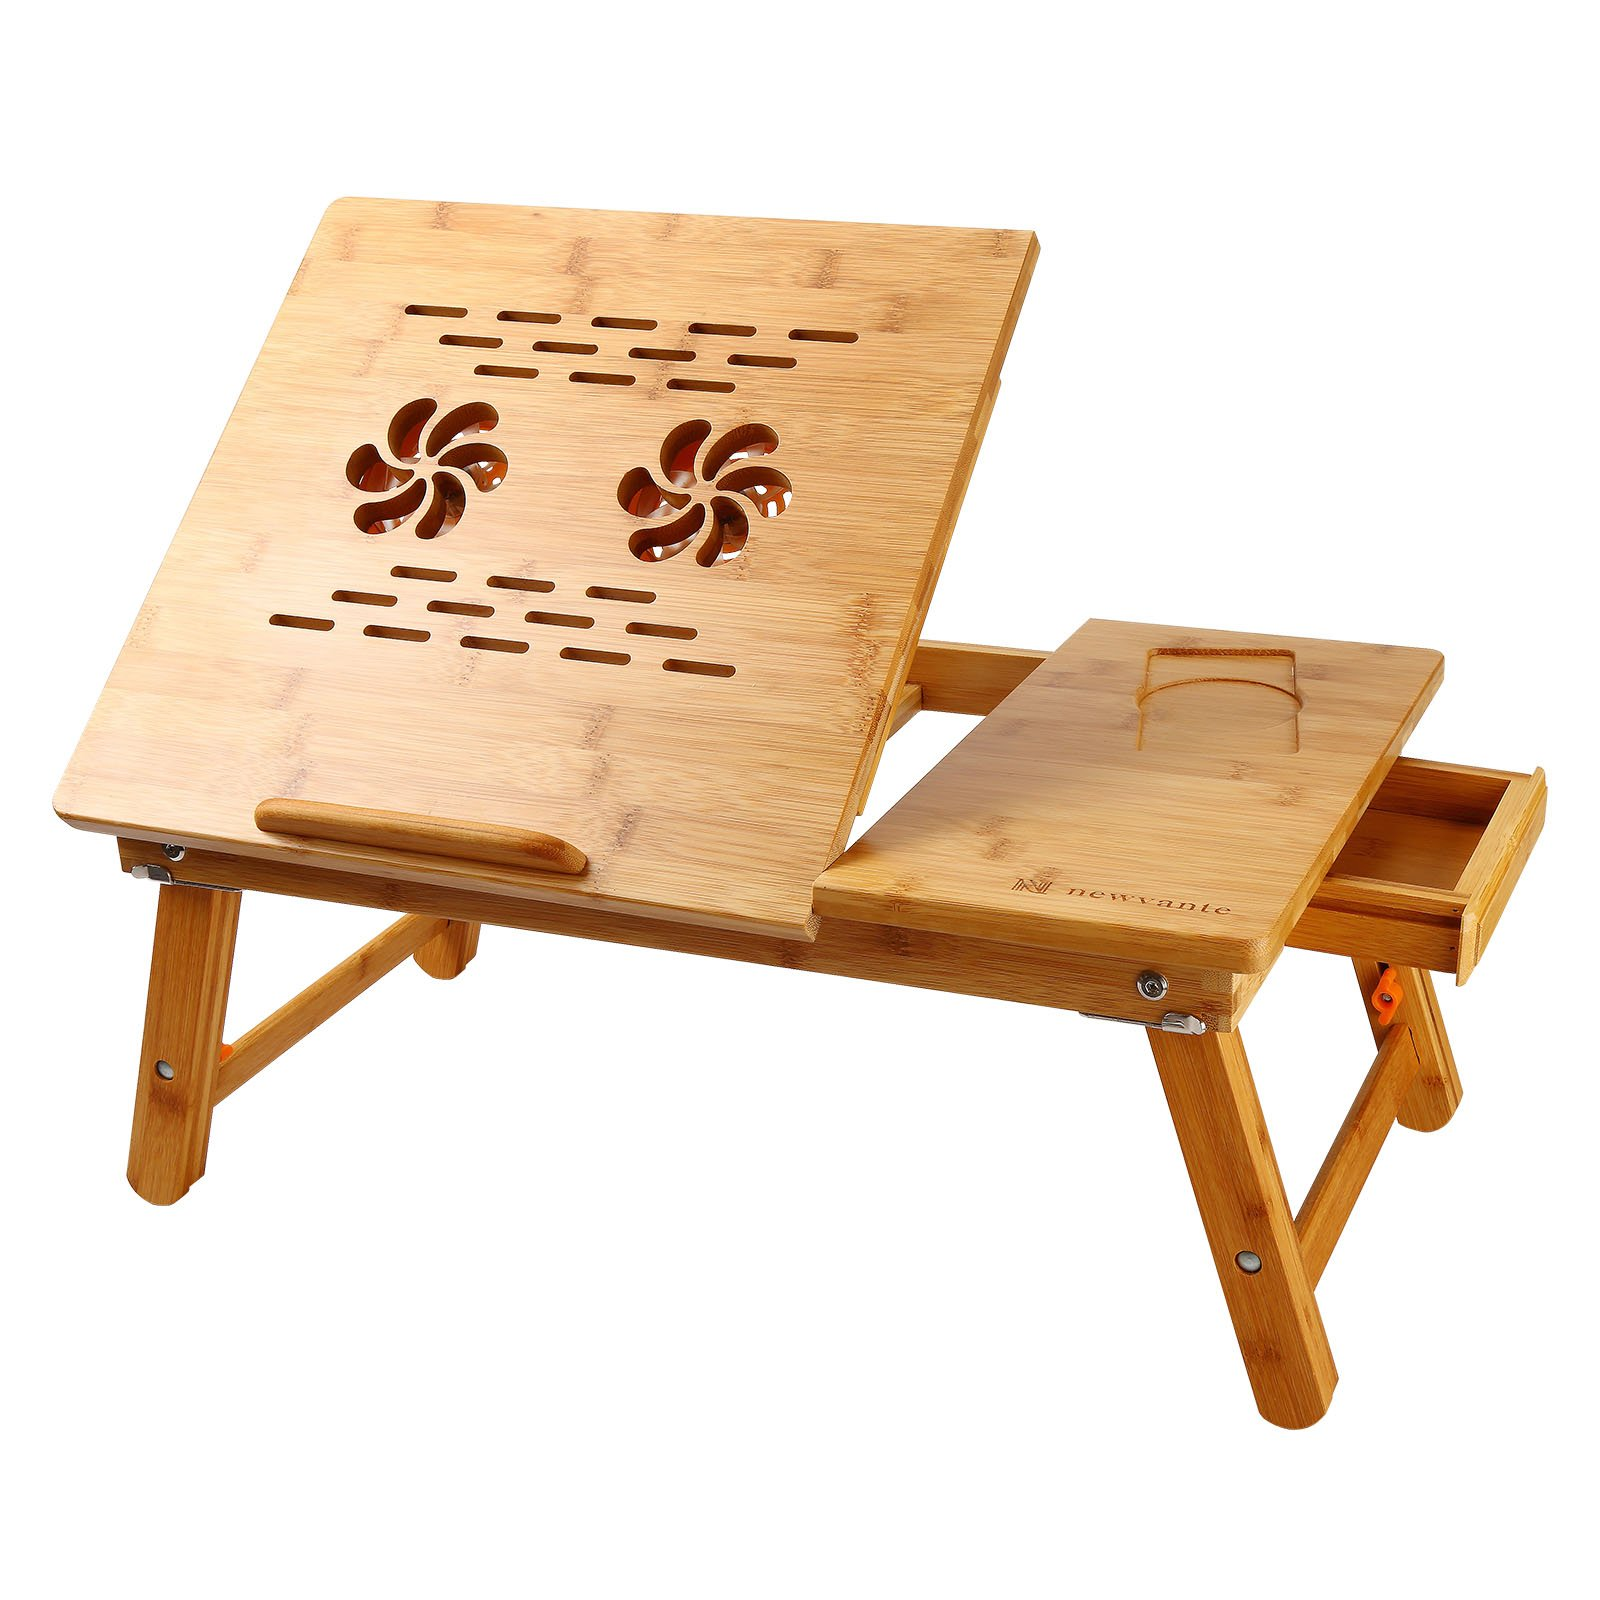 NNEWVANTE Laptop Desk Super Top Laptop Table 100% Bamboo Desk Adjustable with USB Fan2 Foldable Breakfast Serving Bed Tray Drawer